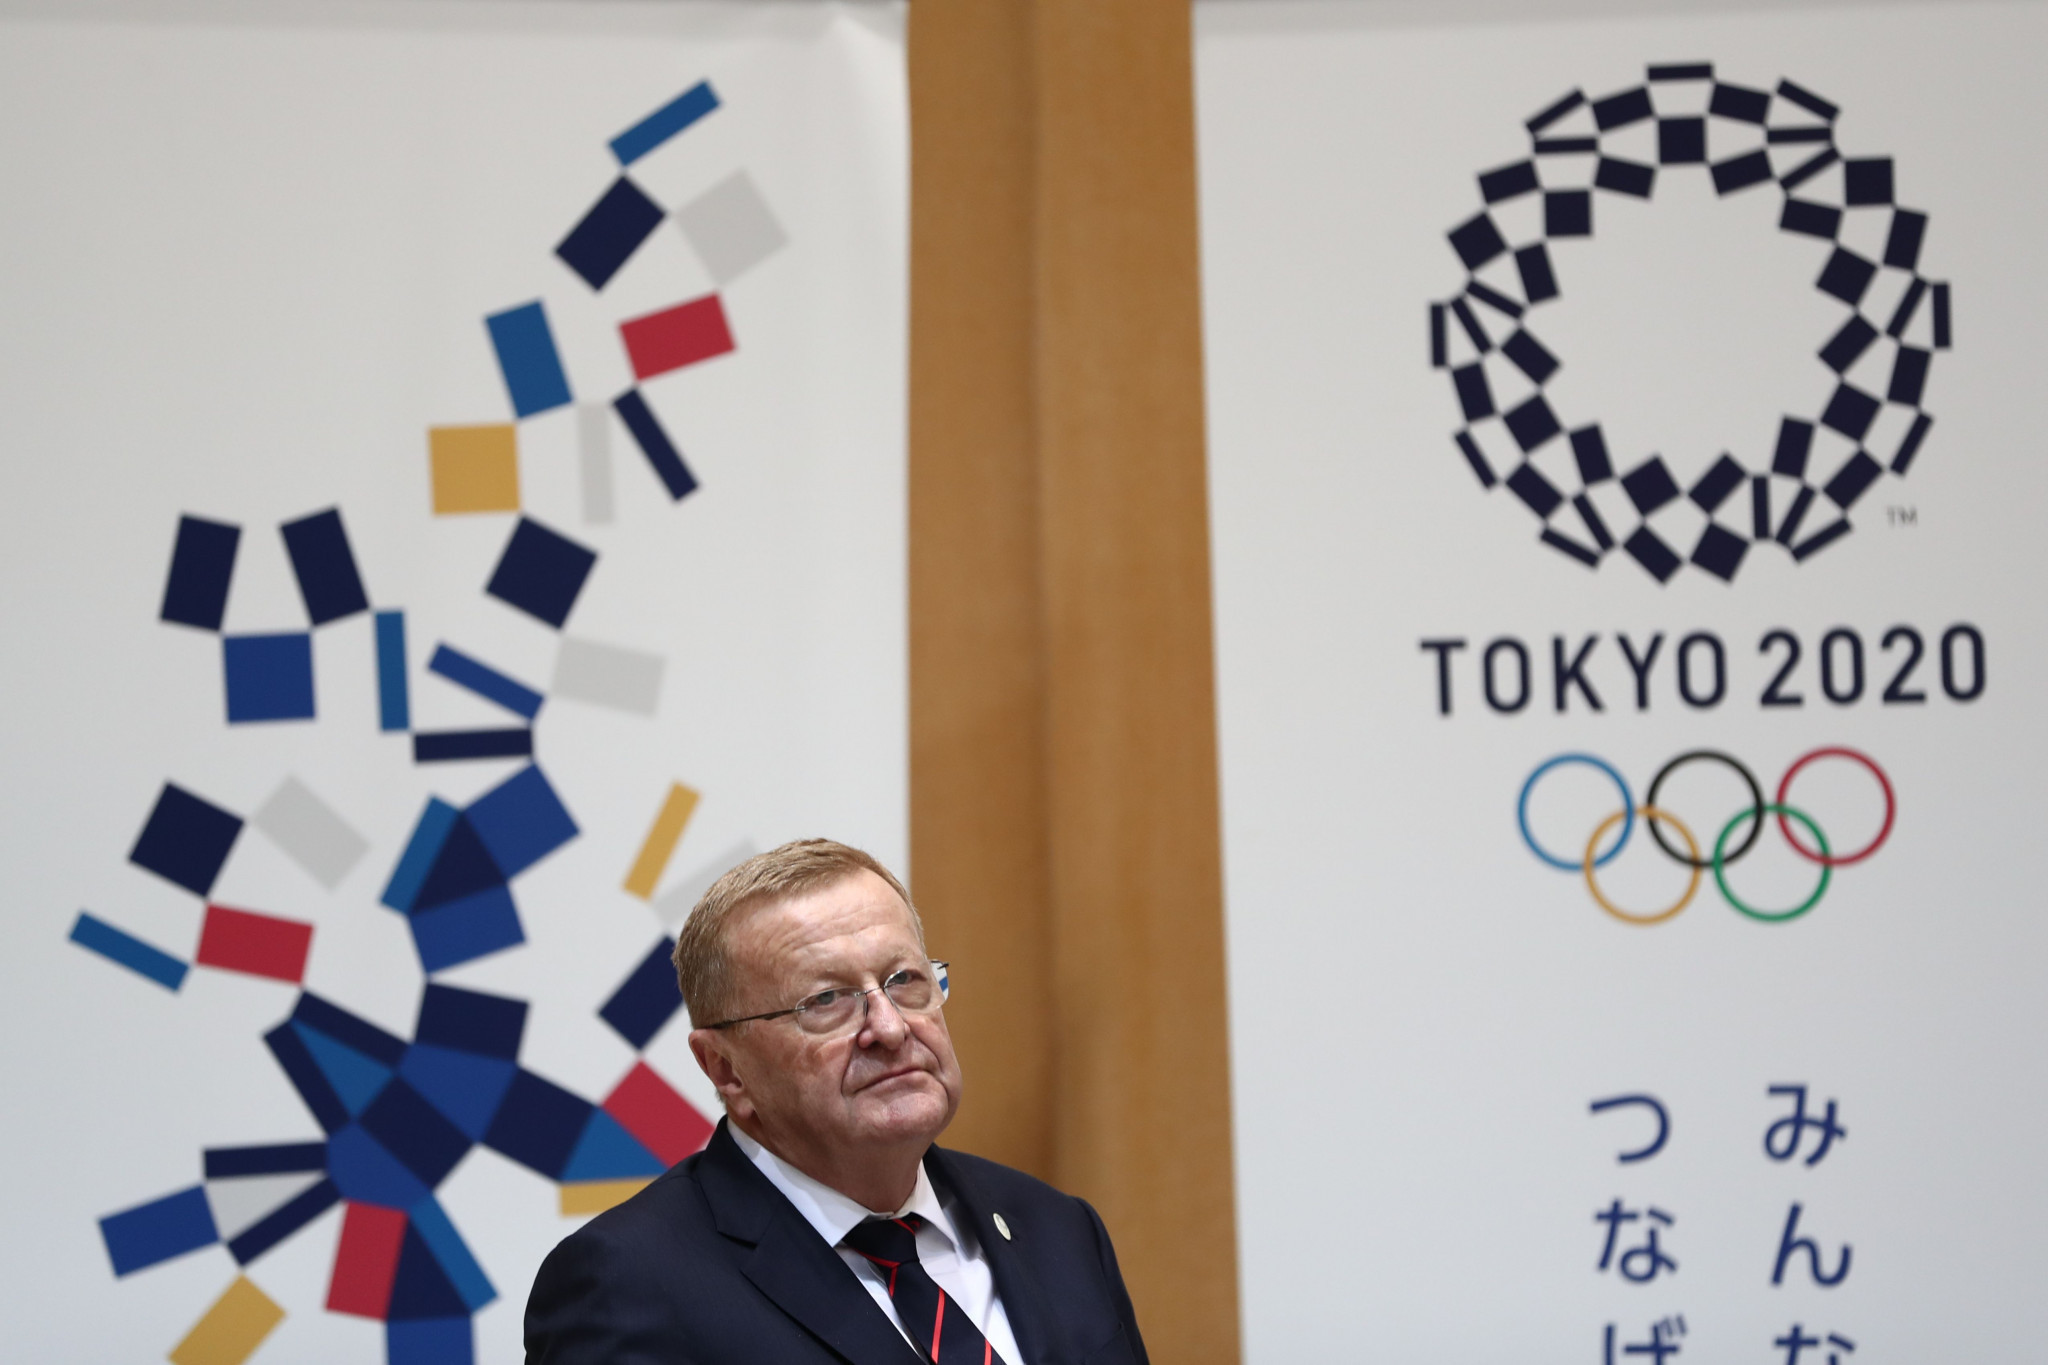 International Olympic Committee vice-president John Coates is a member of Rugby Australia's Rugby World Cup Advisory Board as the country plans a bid for the 2027 event  ©Getty Images